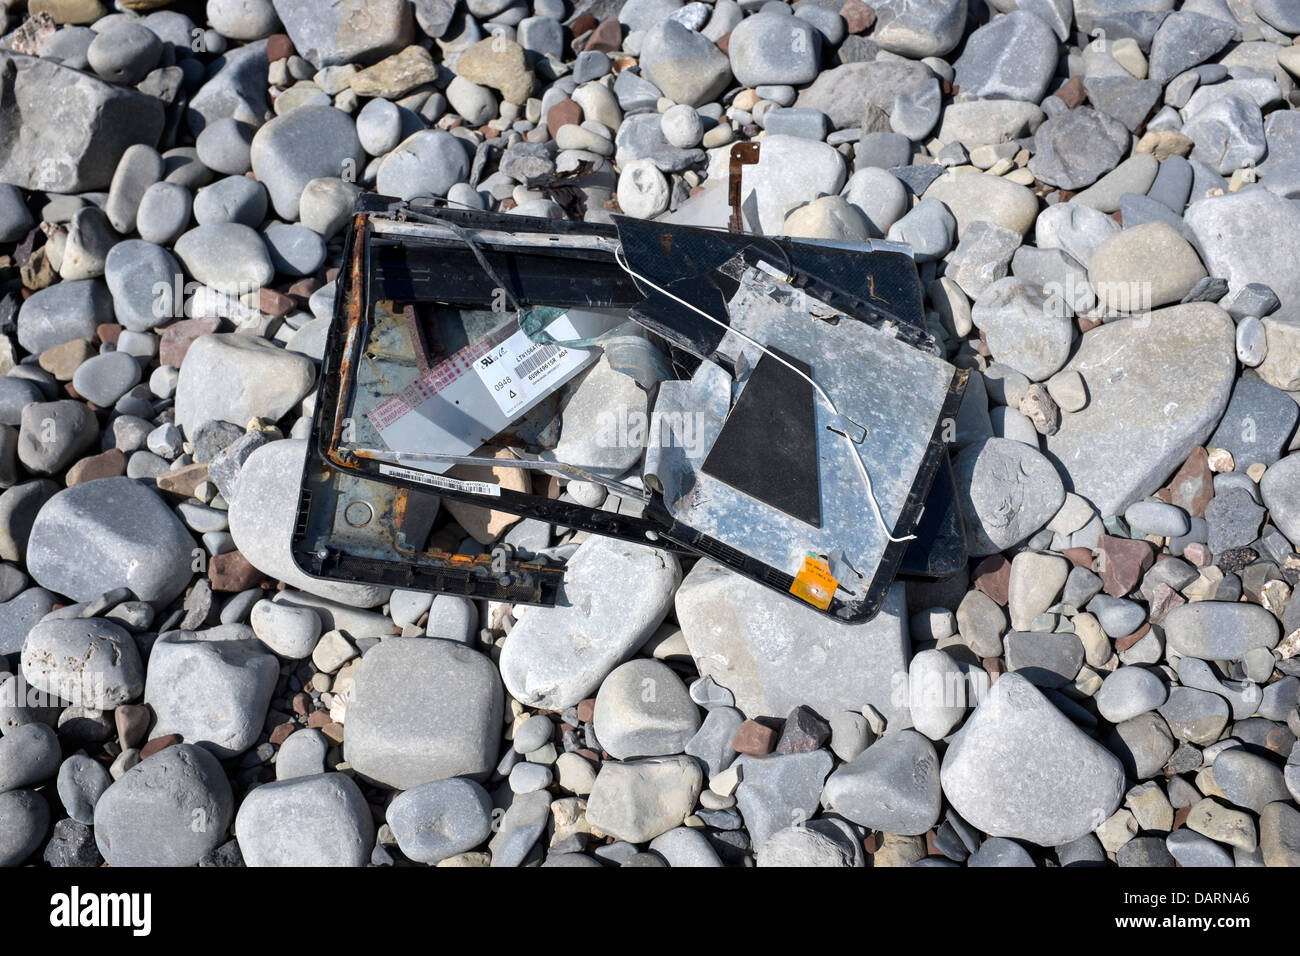 Smashed Up Portable Computer or Laptop on beach - Stock Image